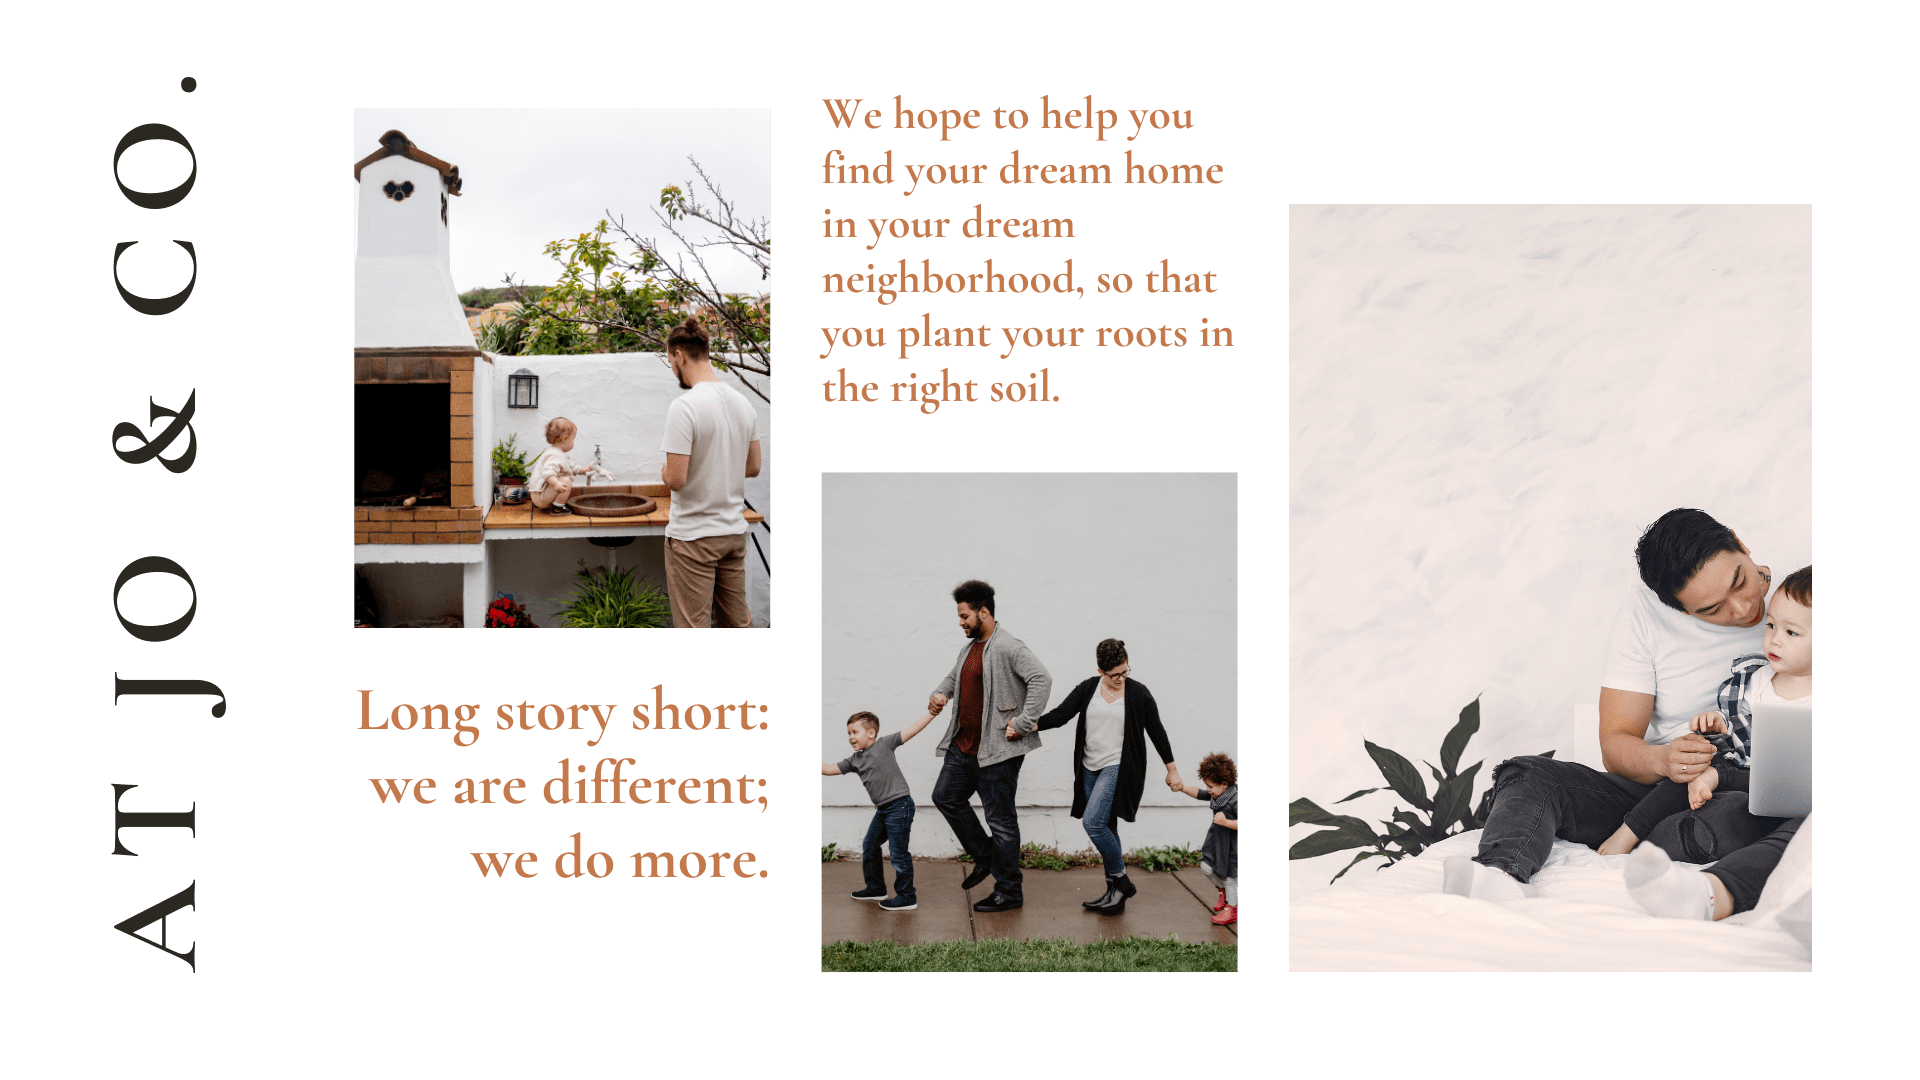 we hope to help you find your dream home in your dream neighborhoods, so that you plant your roots in the right soil. long story short: we are different; we do more.